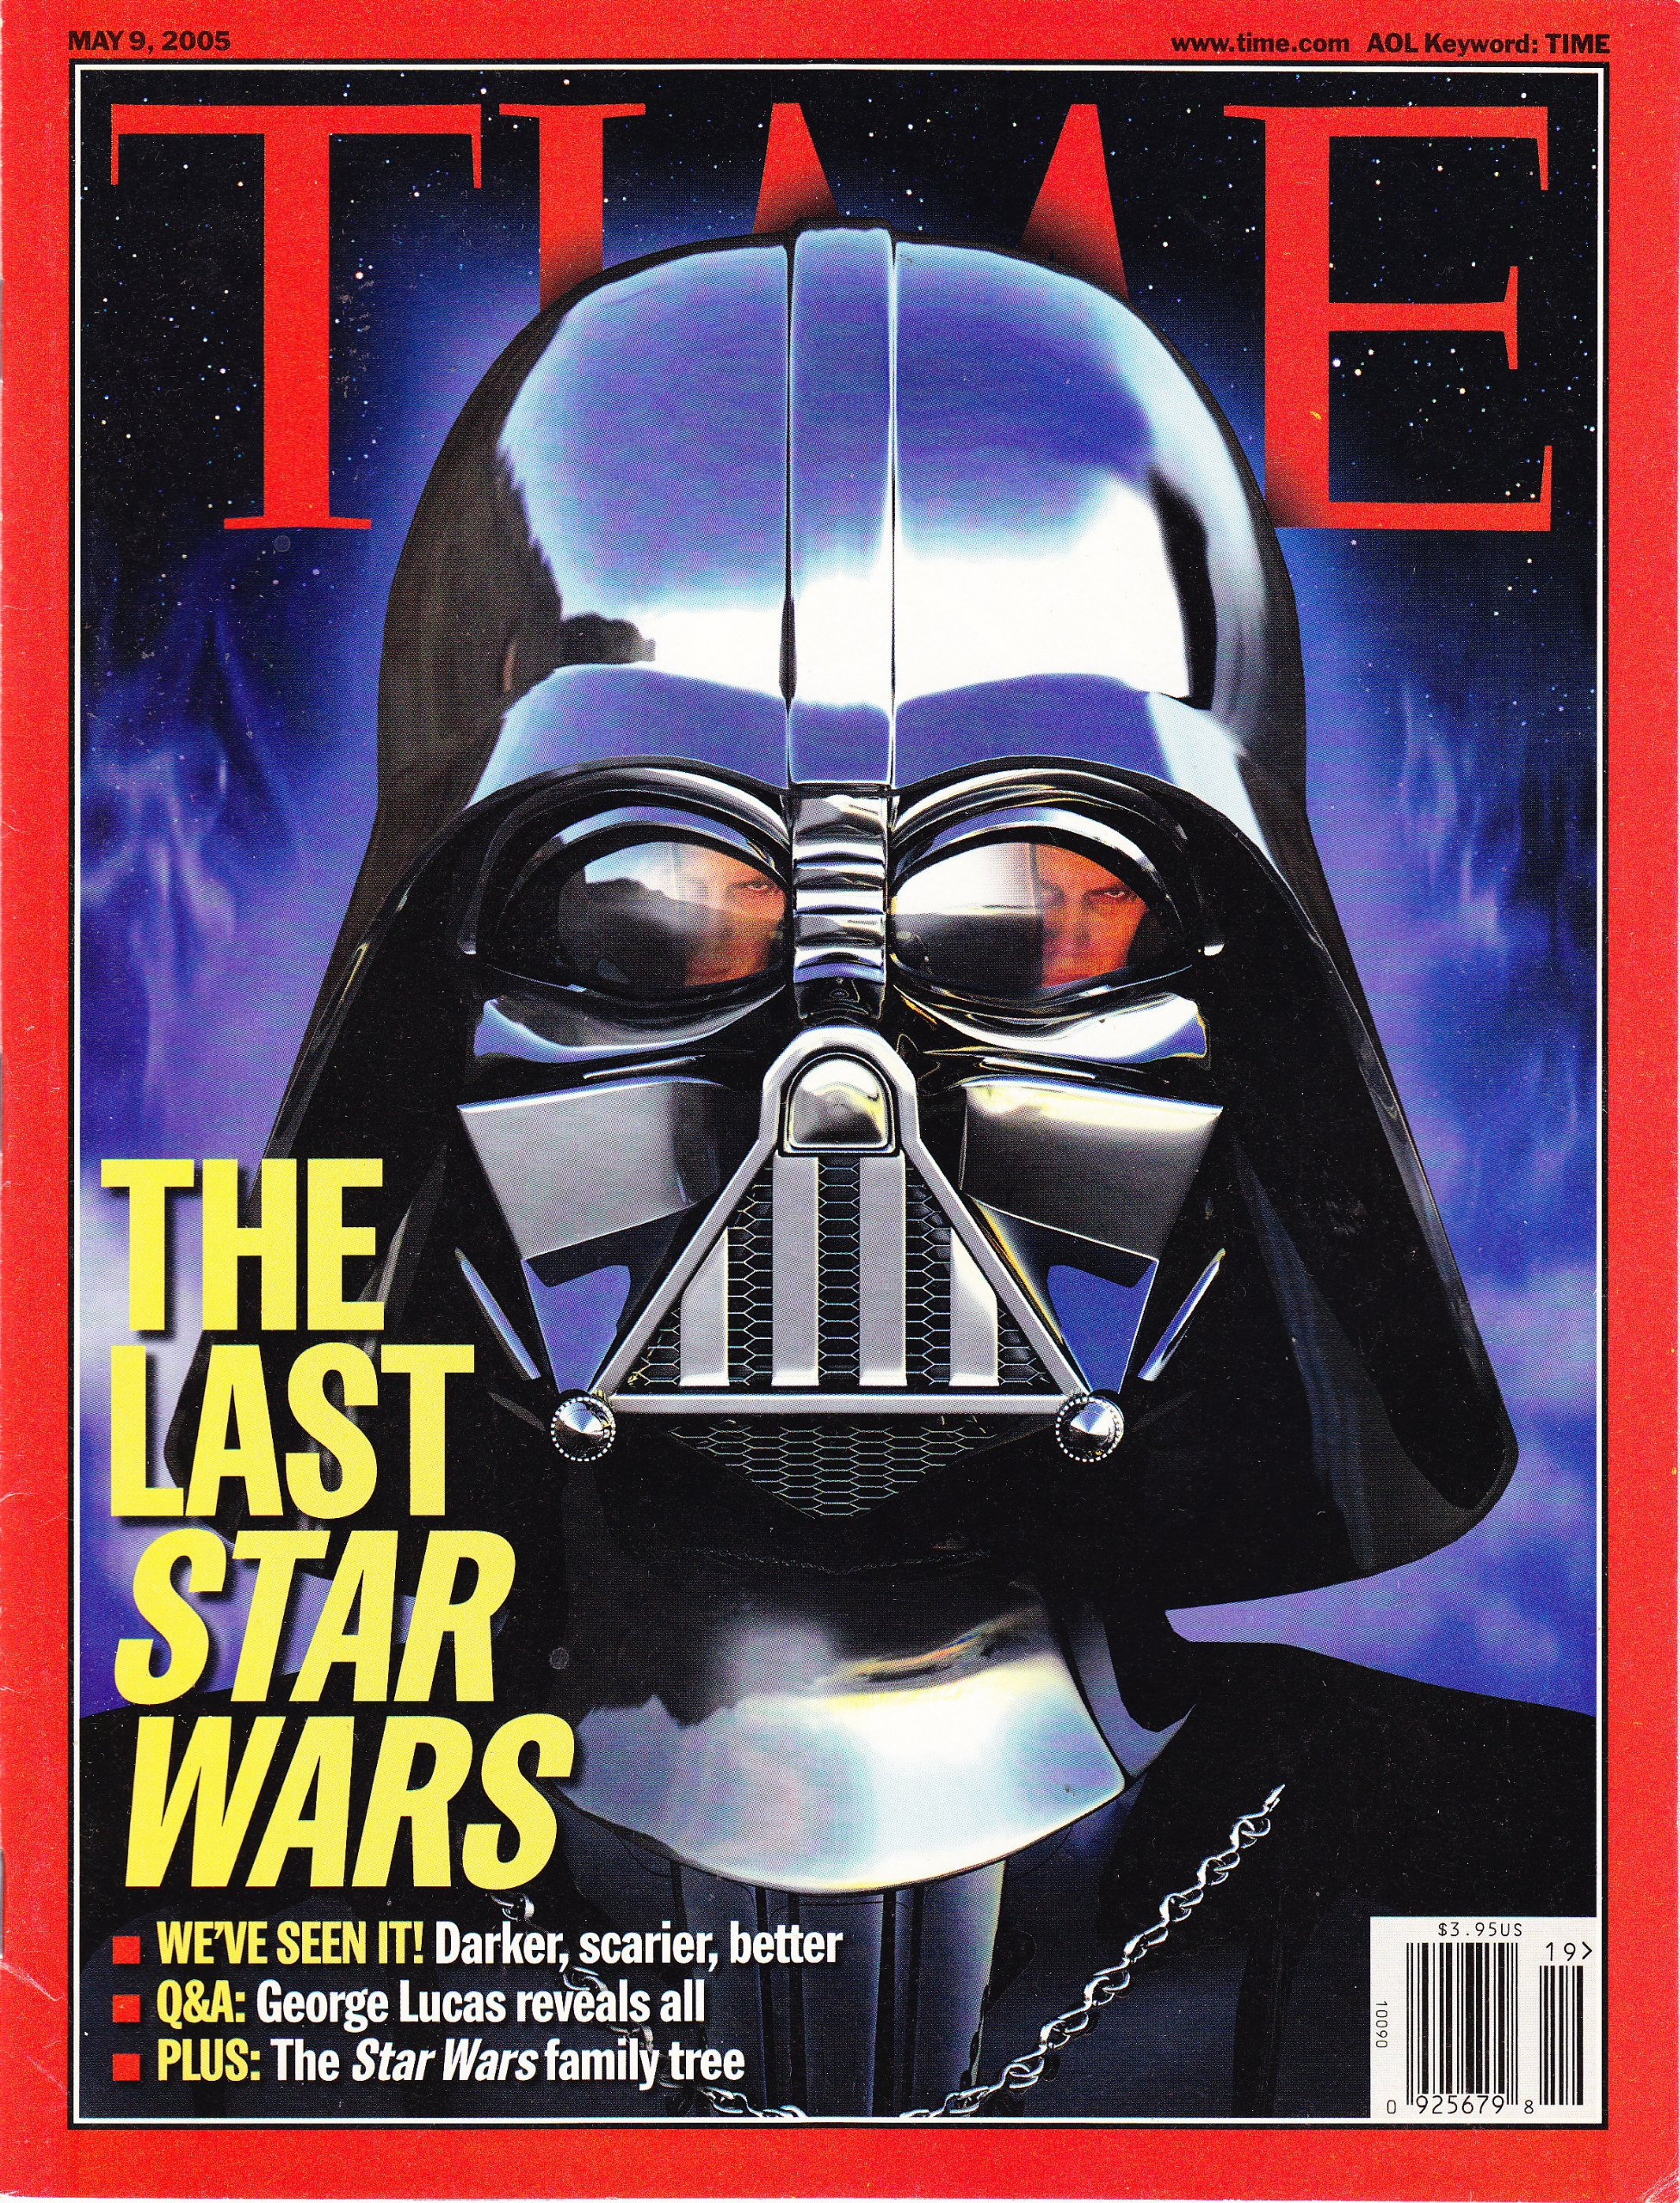 Download Time Magazine May 9, 2005 - The Last Star Wars PDF